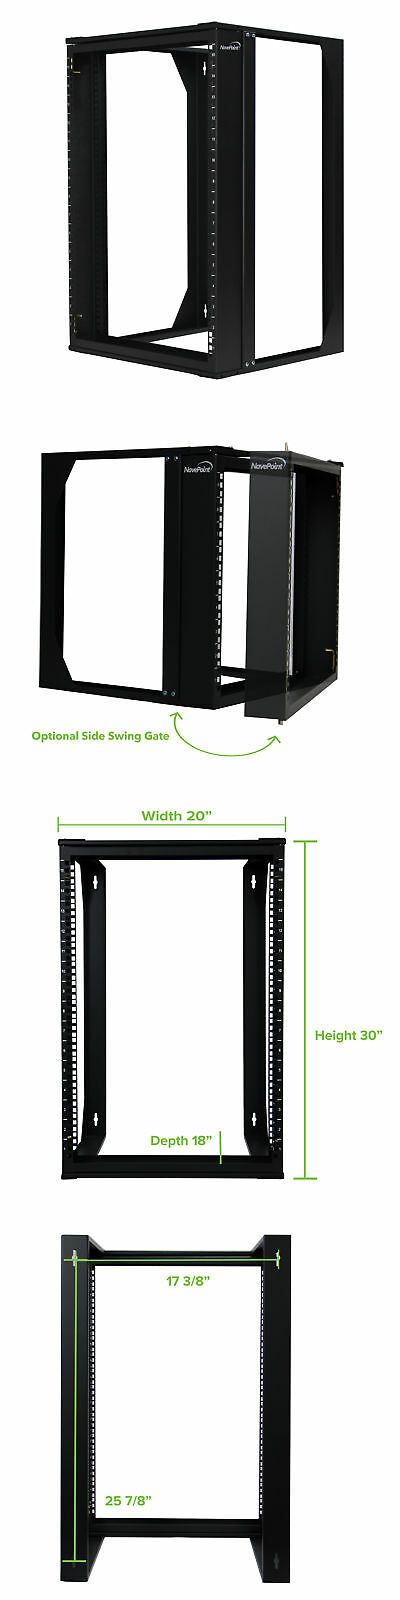 15u Wall Mount It Open Frame 19 Network Rack With Swing Out Hinged Gate Black Open Frame Patch Panels Network Rack